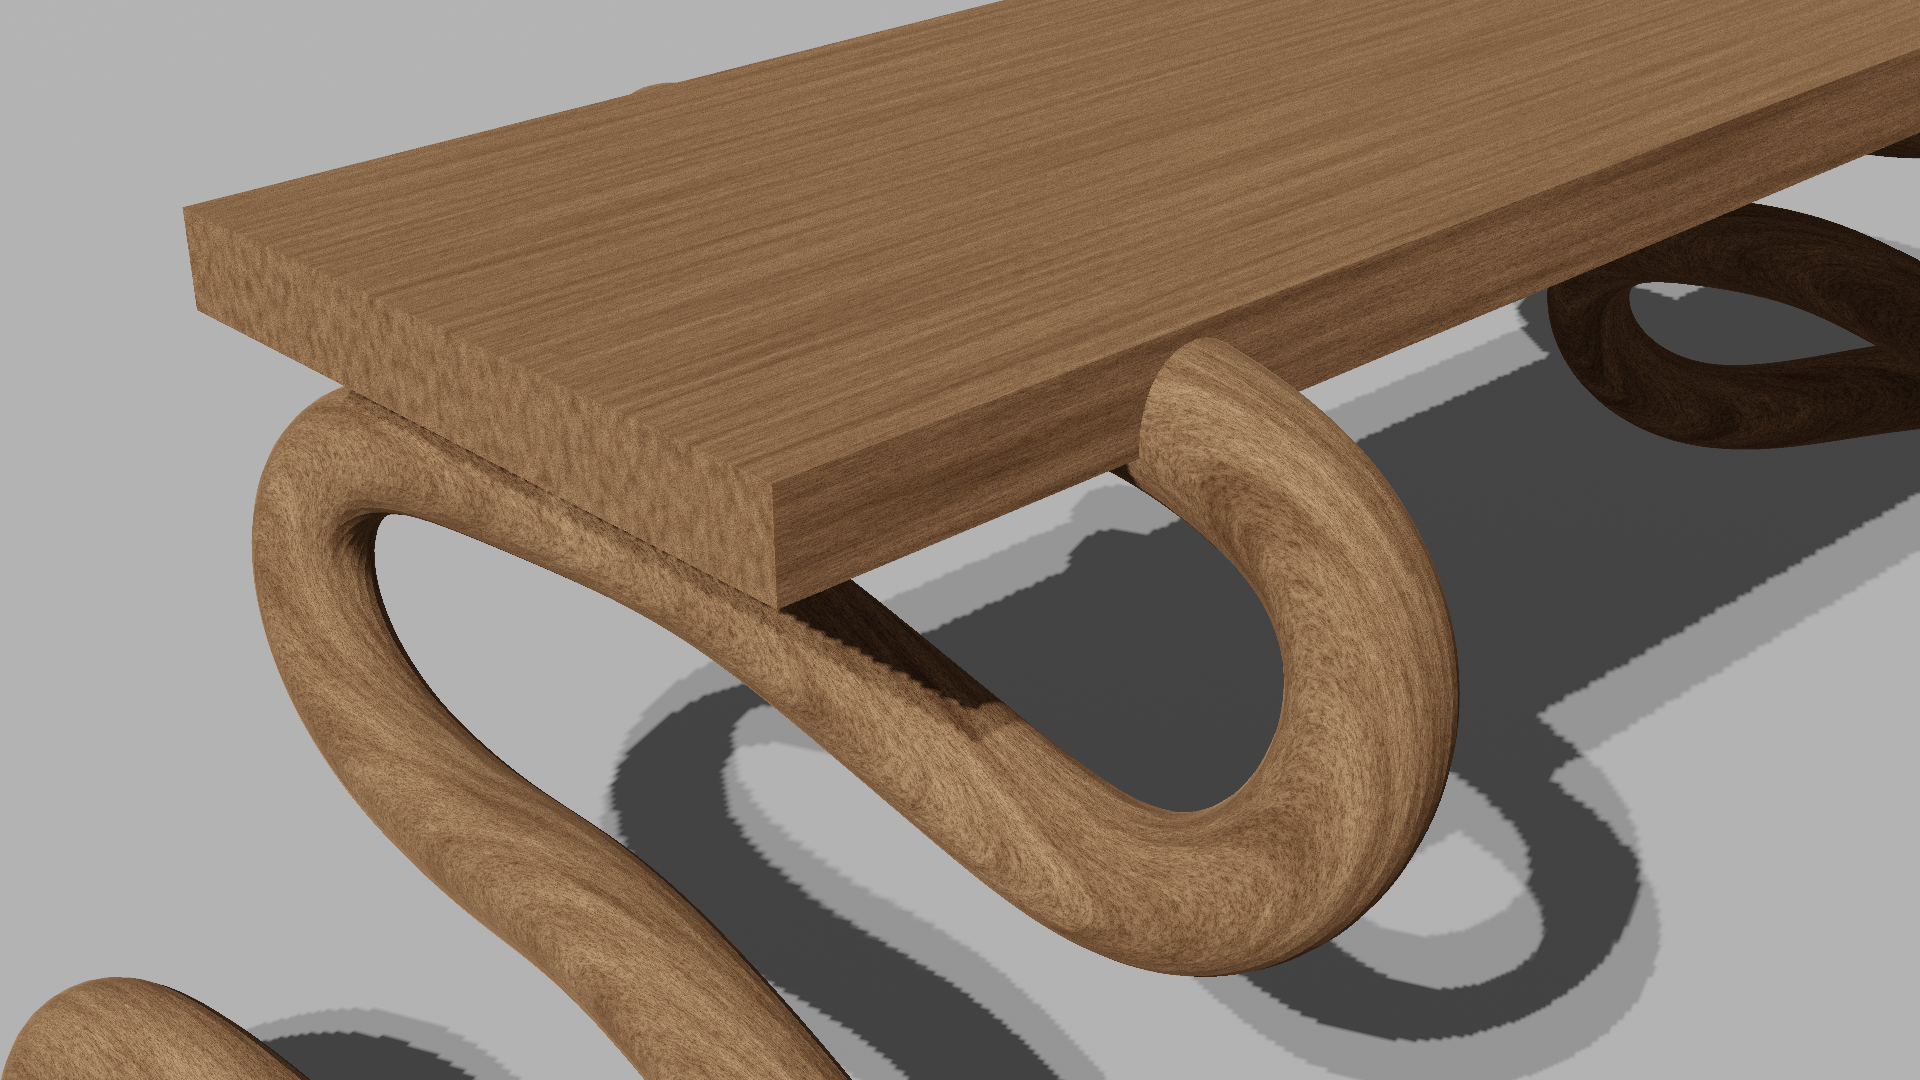 simple wood bench preview image 2